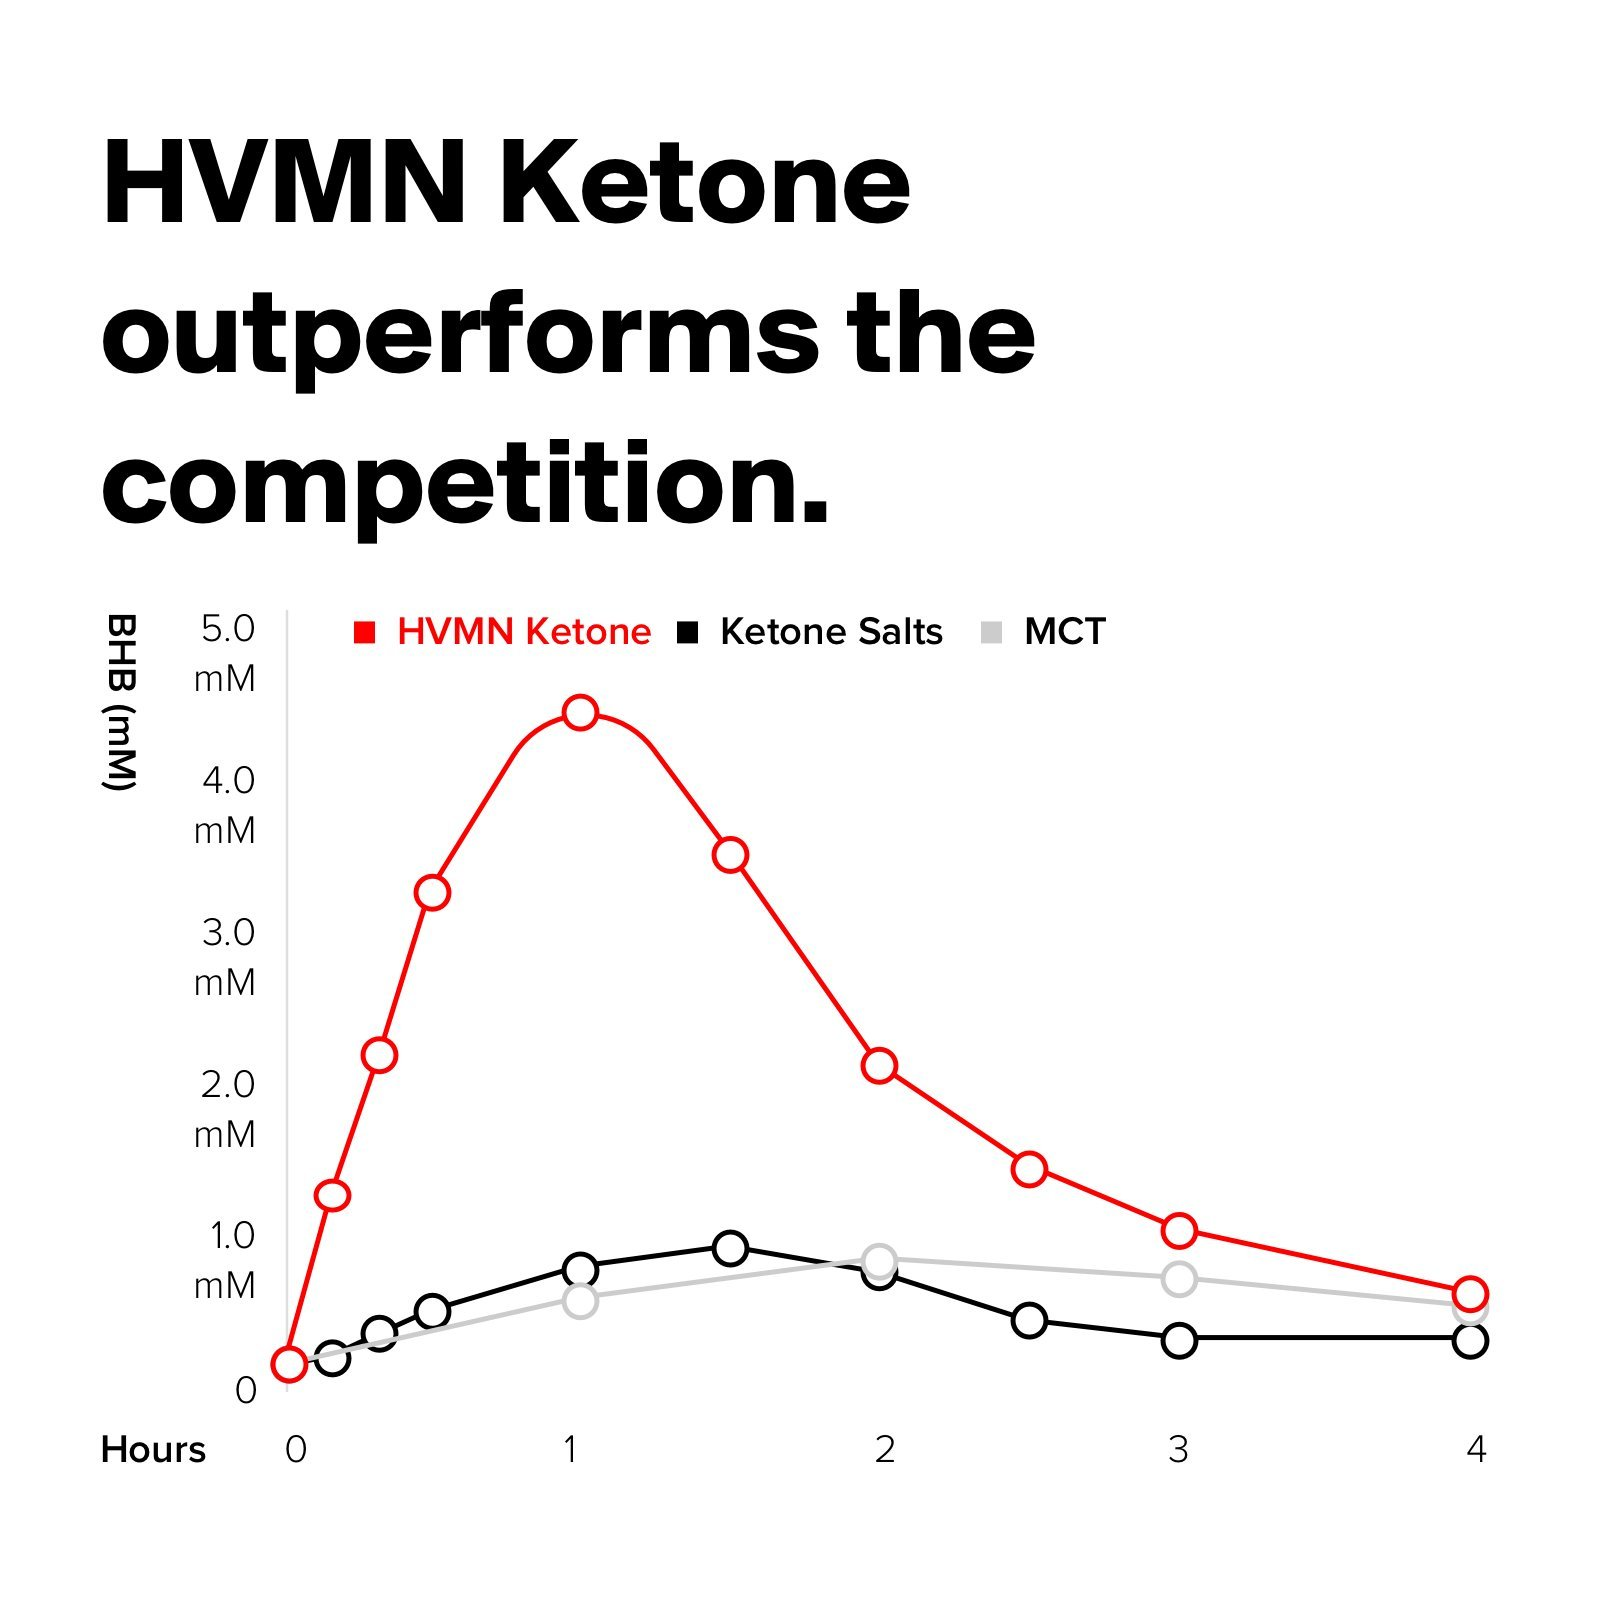 H.V.M.N. Ketone Ester - Exogenous Ketone Drink & Supplement for Endurance, Rapid Ketosis, Keto Diet, Fasting, Energy from Exogenous BHB - 3Count by HVMN (Image #5)